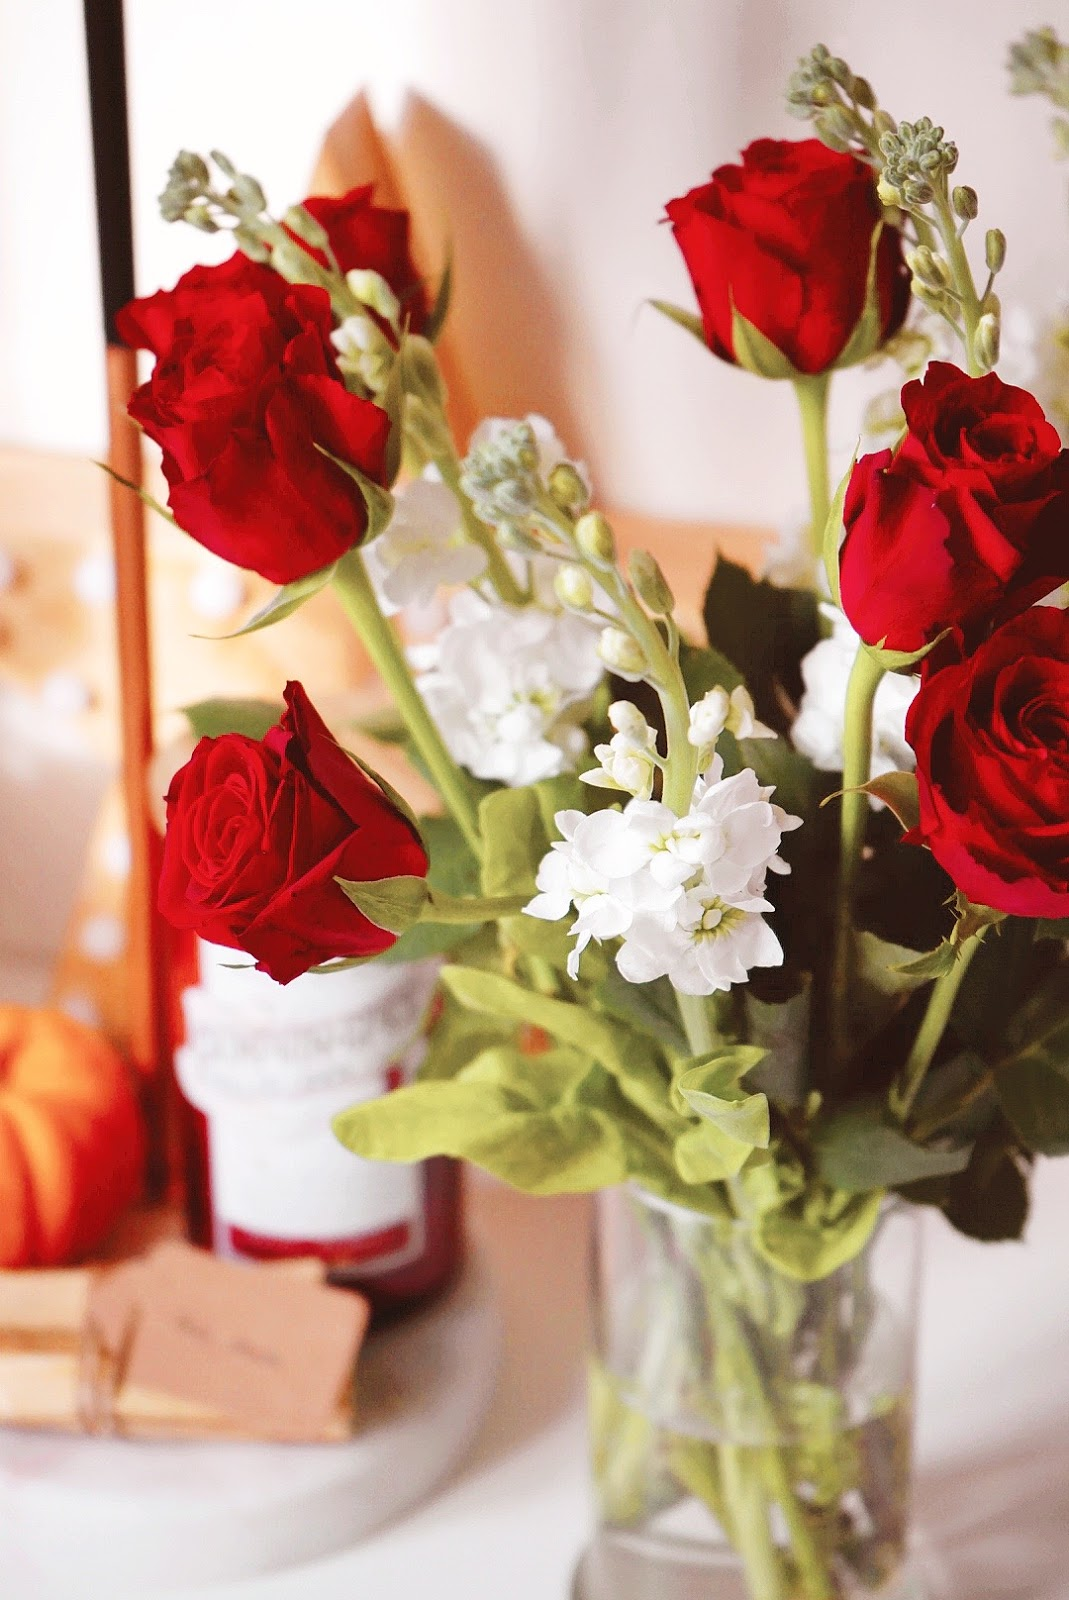 Valentines Day: Blossoming Gifts